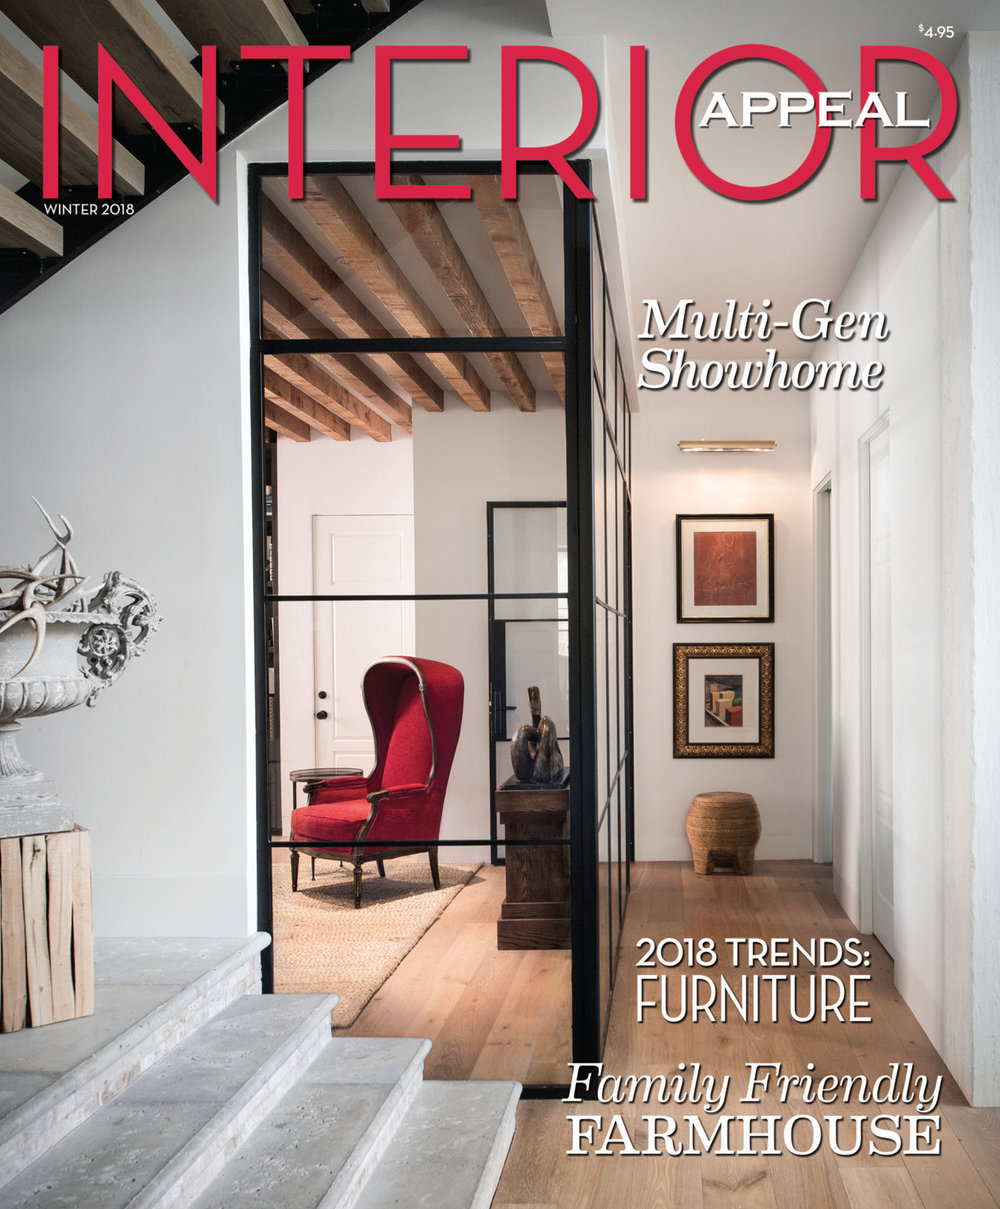 Interior_appeal_cover_winter.jpg